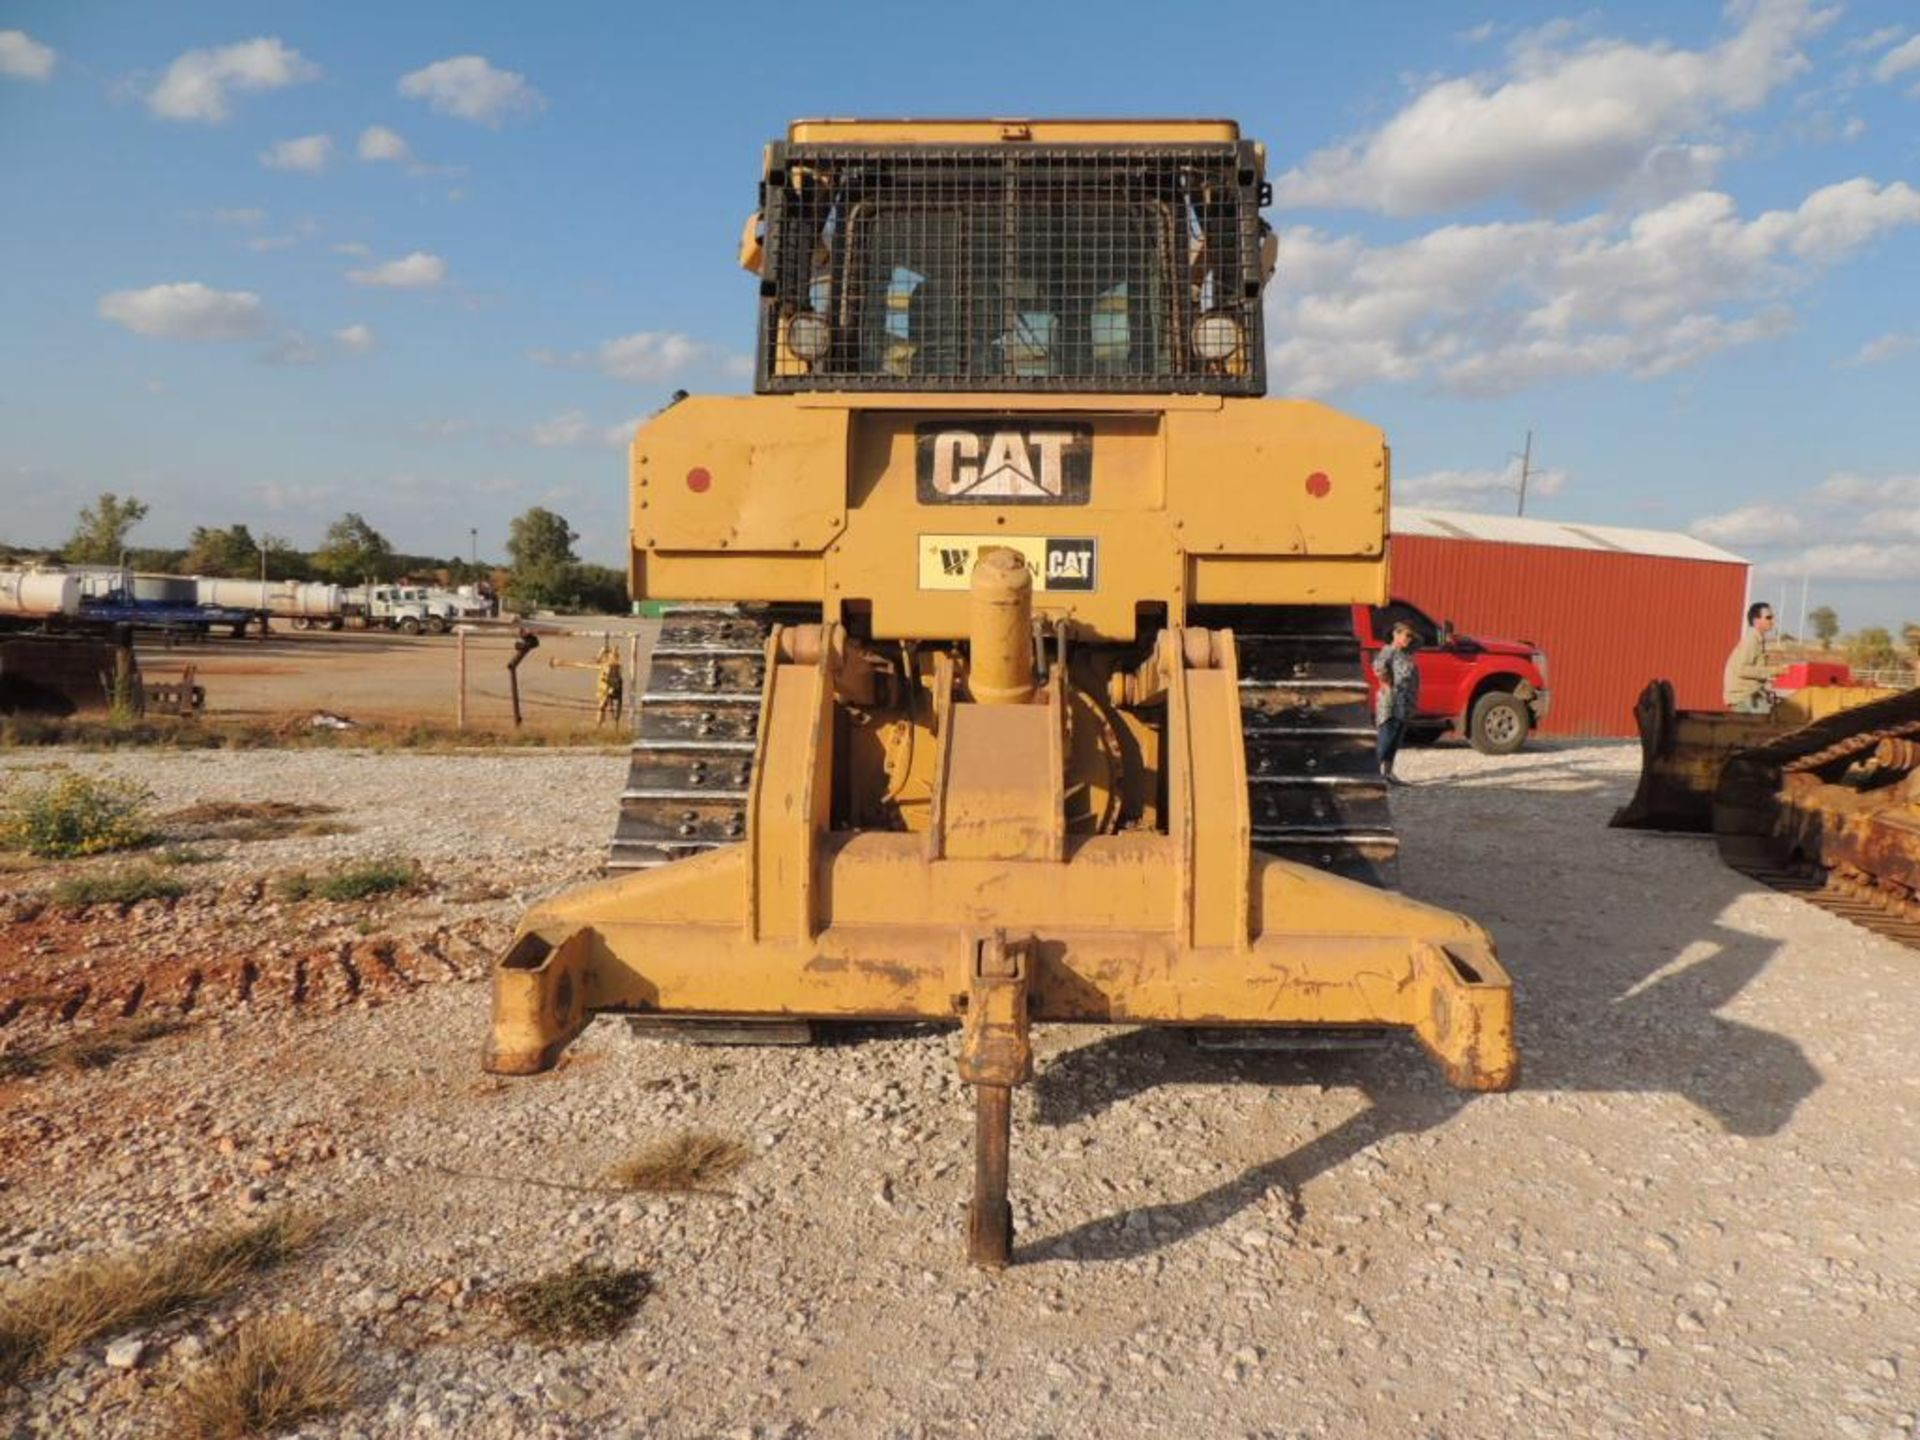 2007 Caterpillar D6T XL Crawler Tractor w/ Ripper, 90 % Remaining on Undercarrige, EROPS, Semi-U - Image 4 of 10